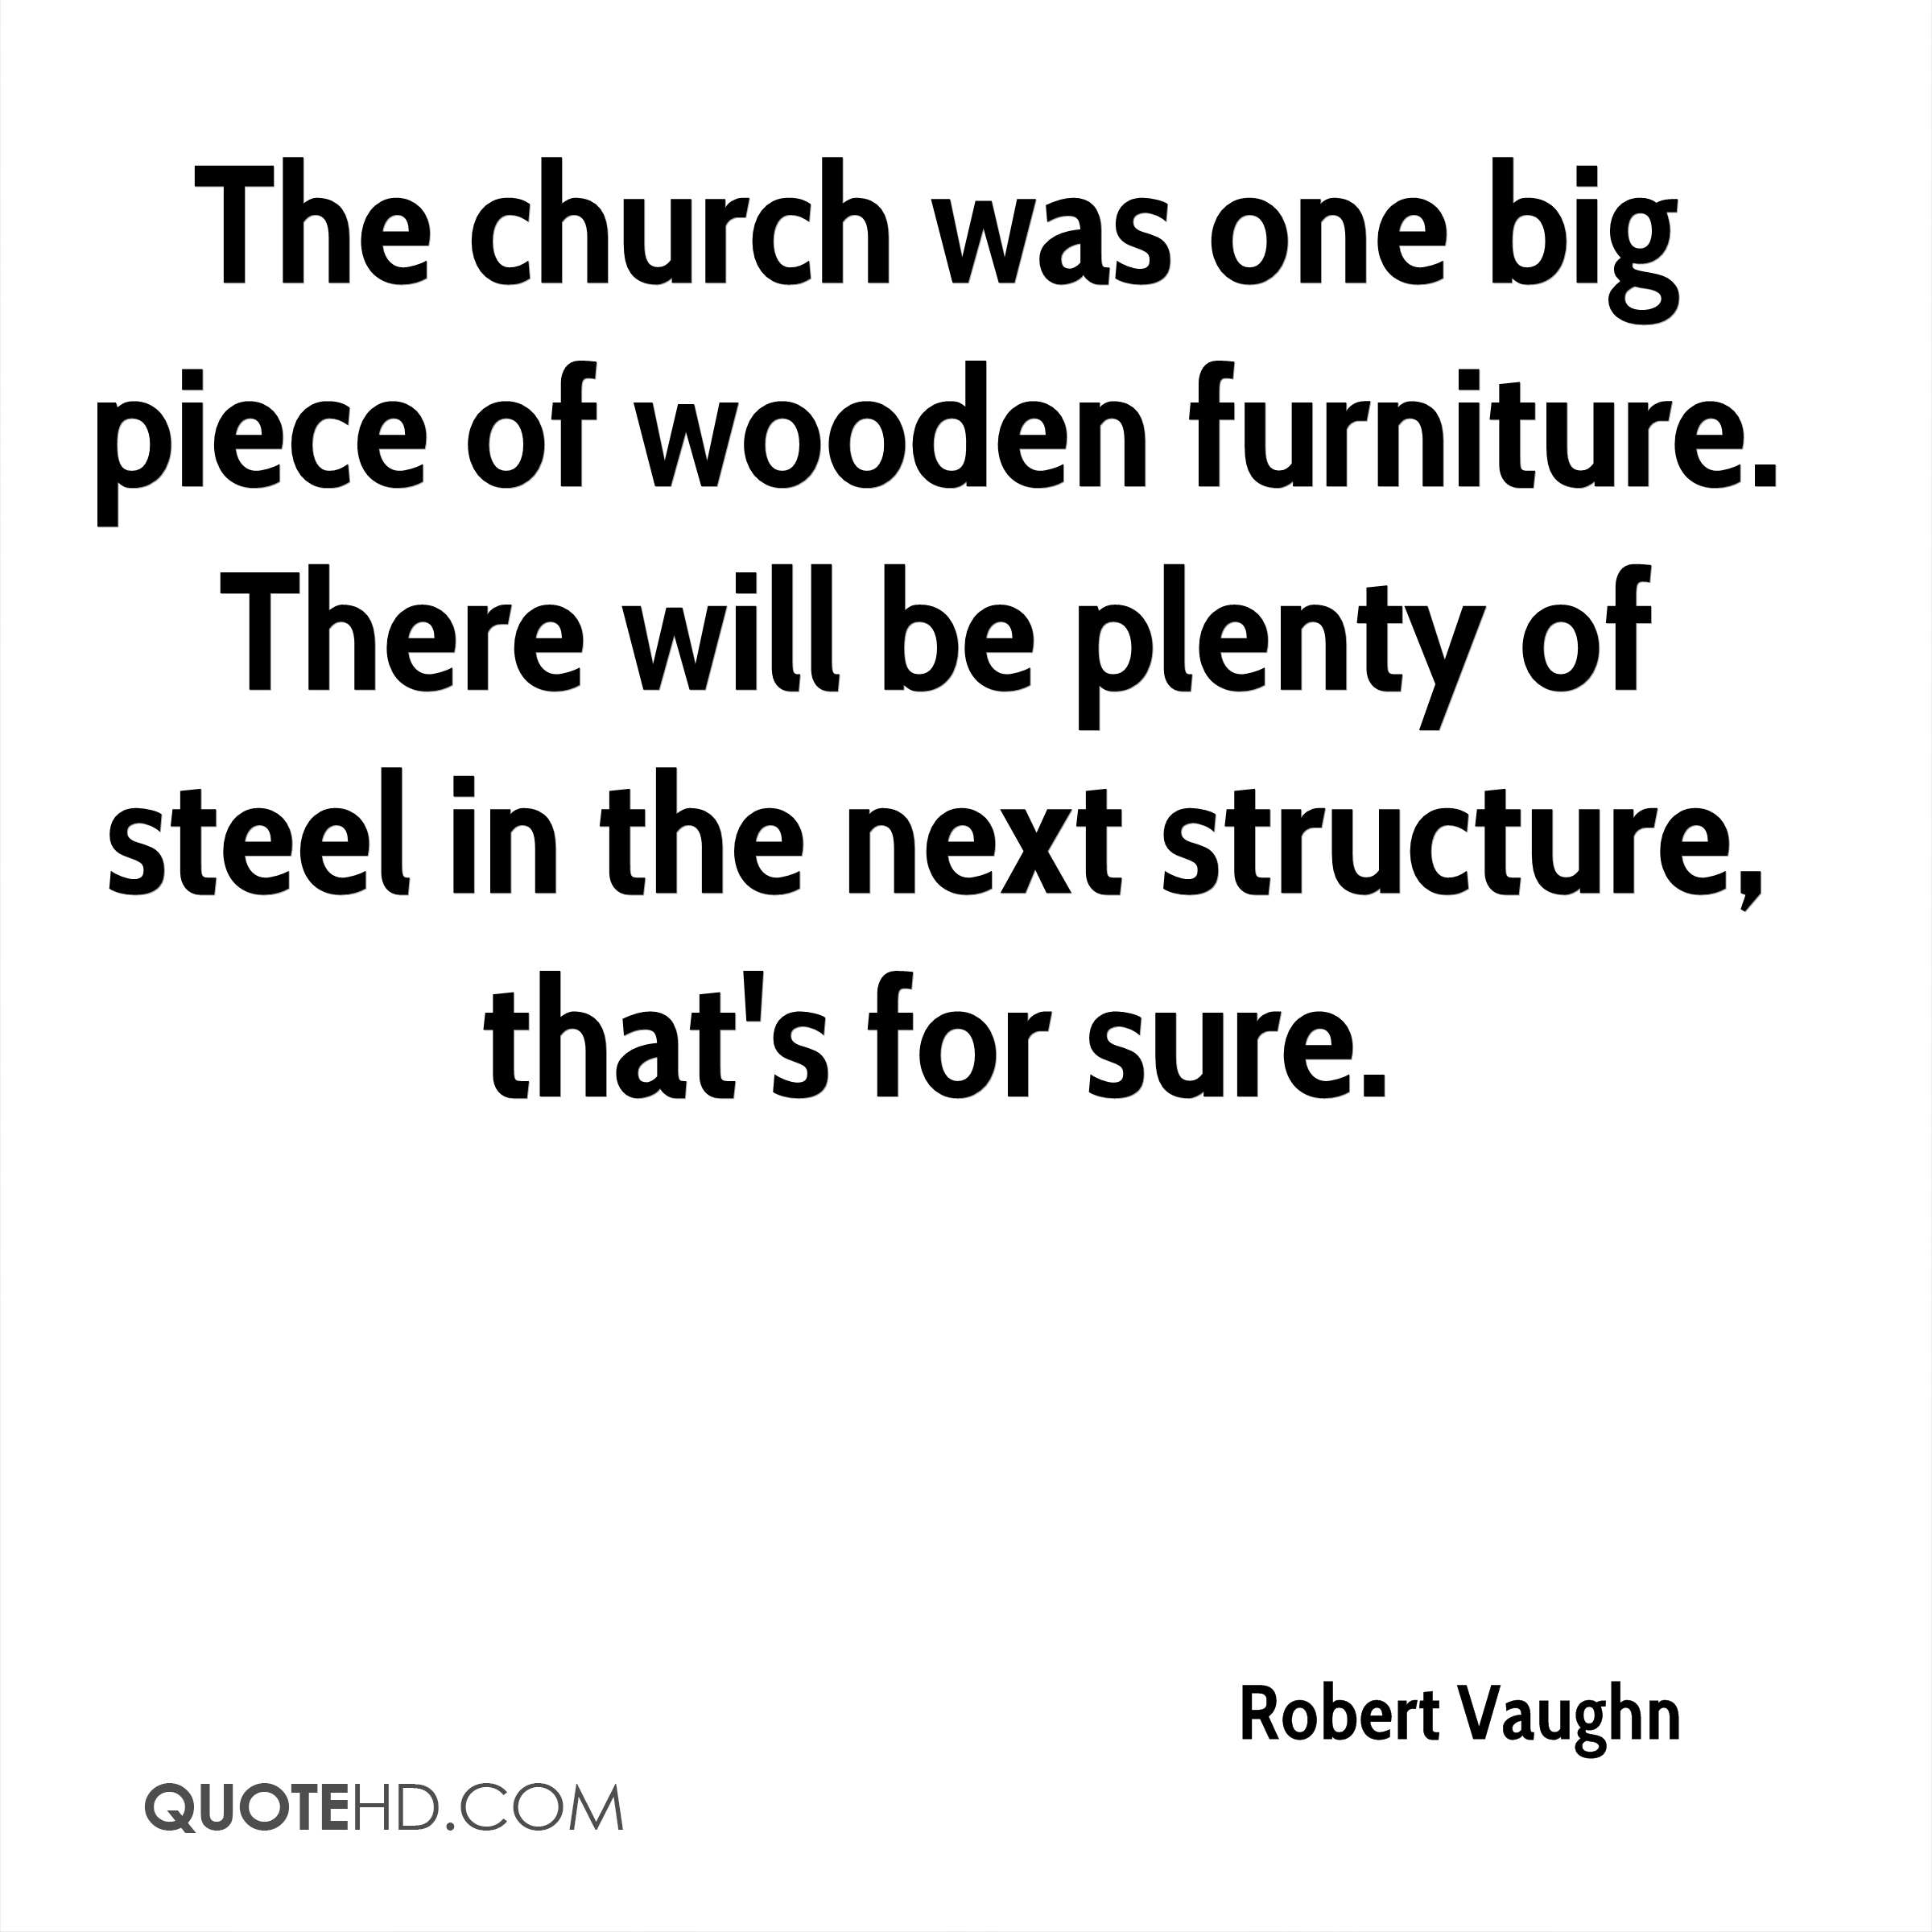 The church was one big piece of wooden furniture. There will be plenty of steel in the next structure, that's for sure.